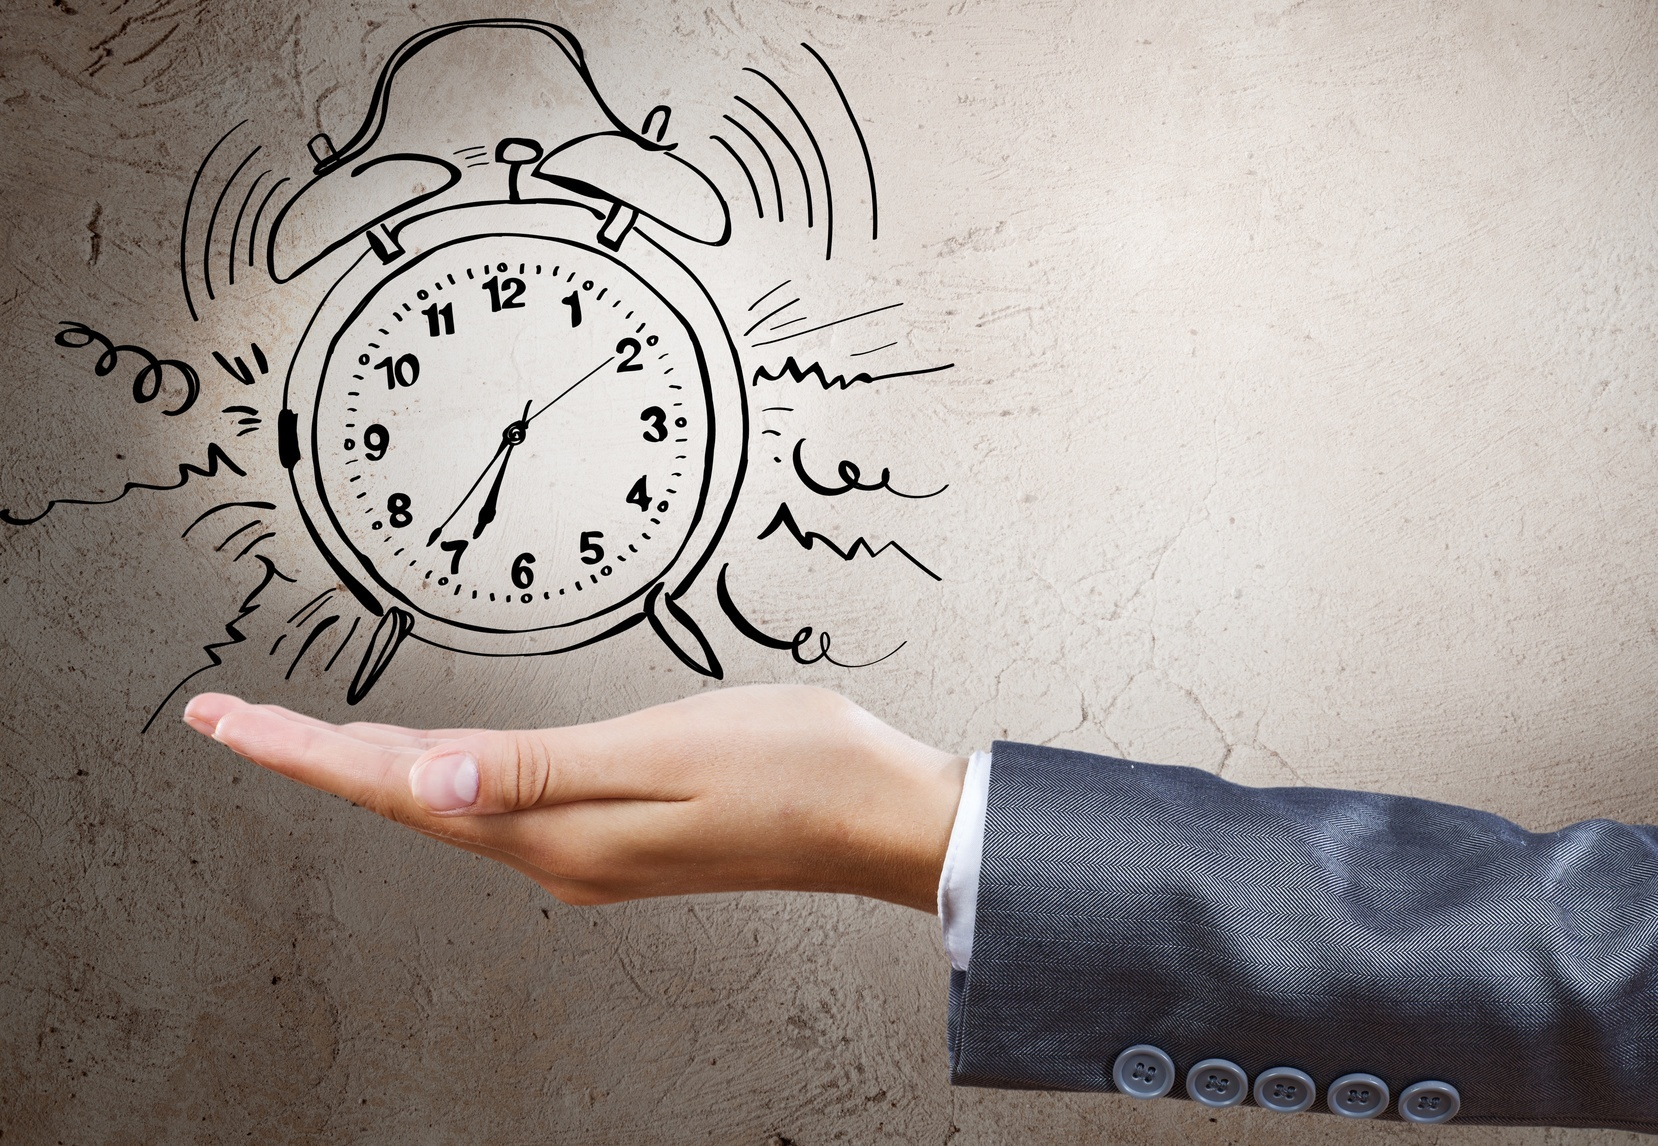 4 Ways to Create Urgency in the Sales Cycle